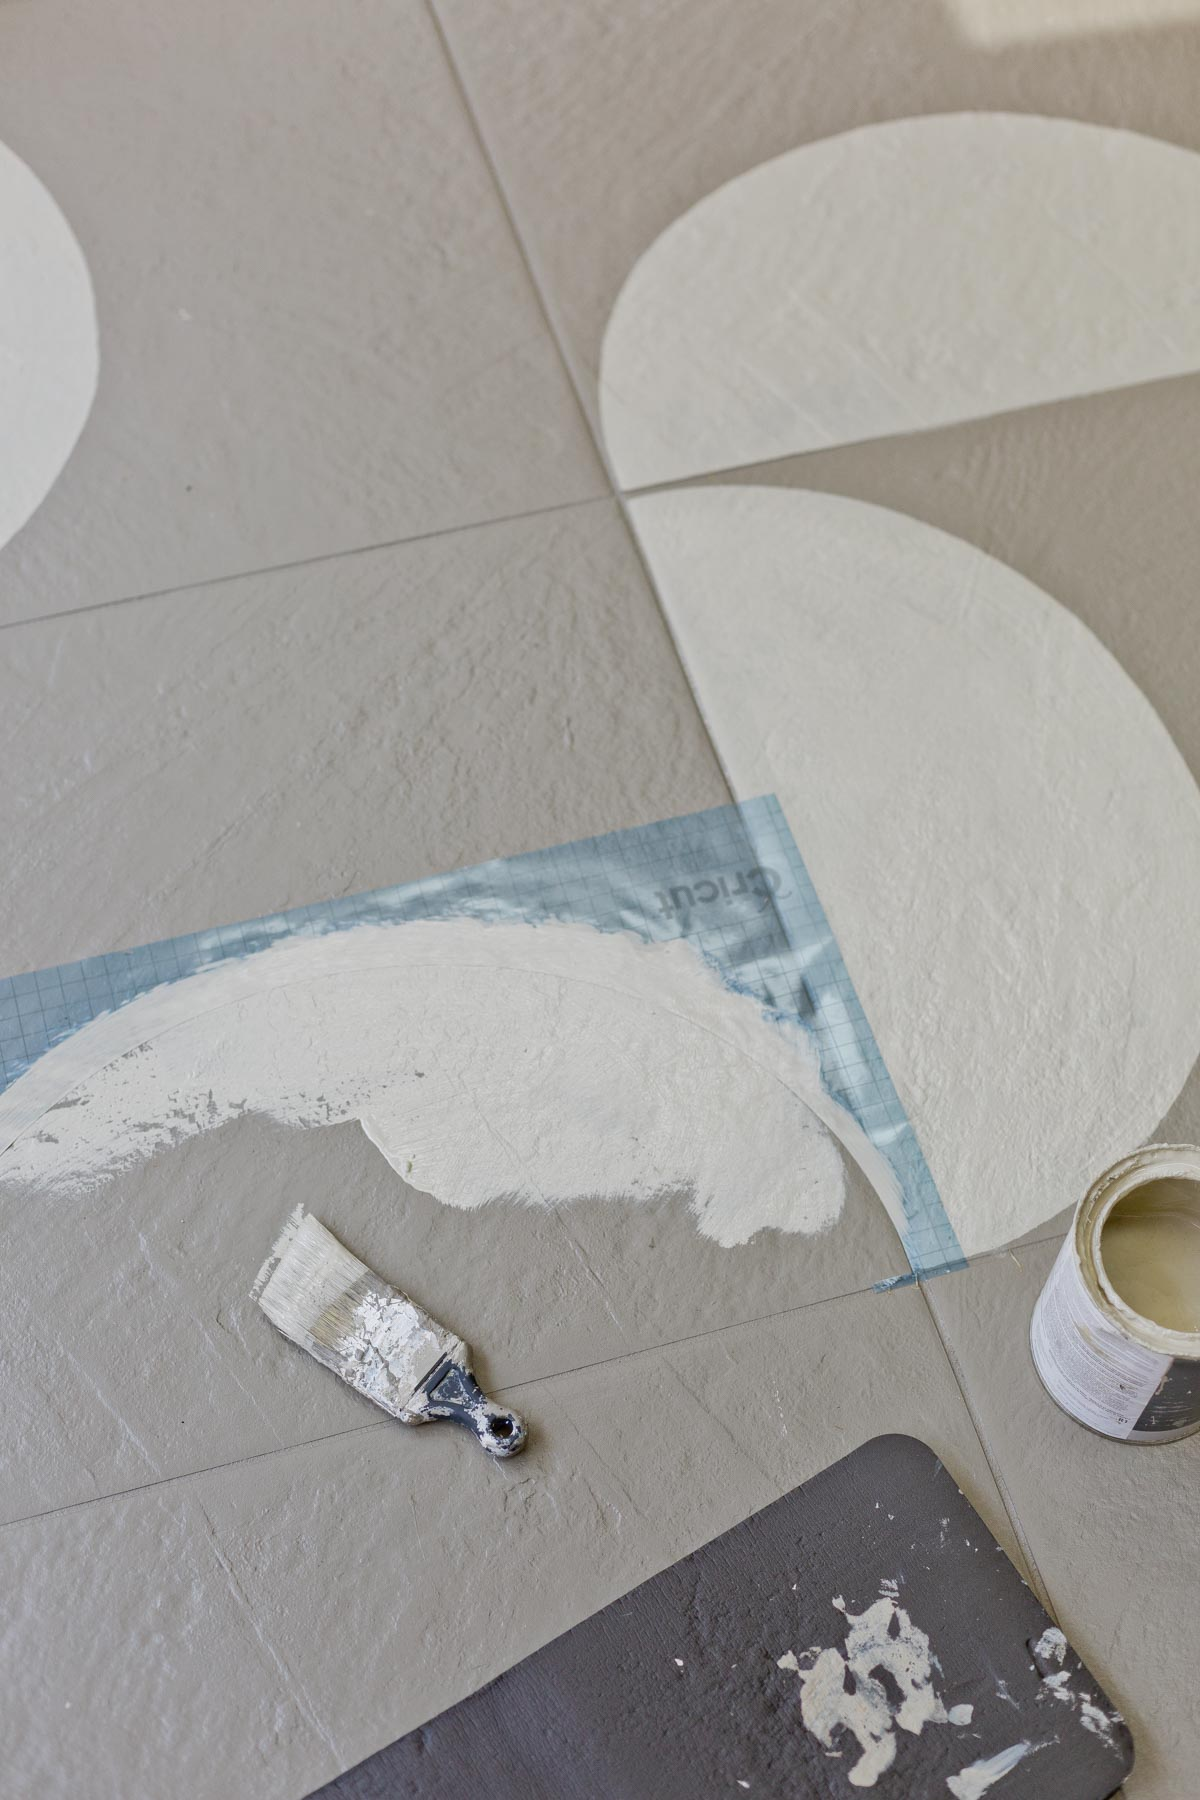 Painting floor tiles with a stencil and paint brush.